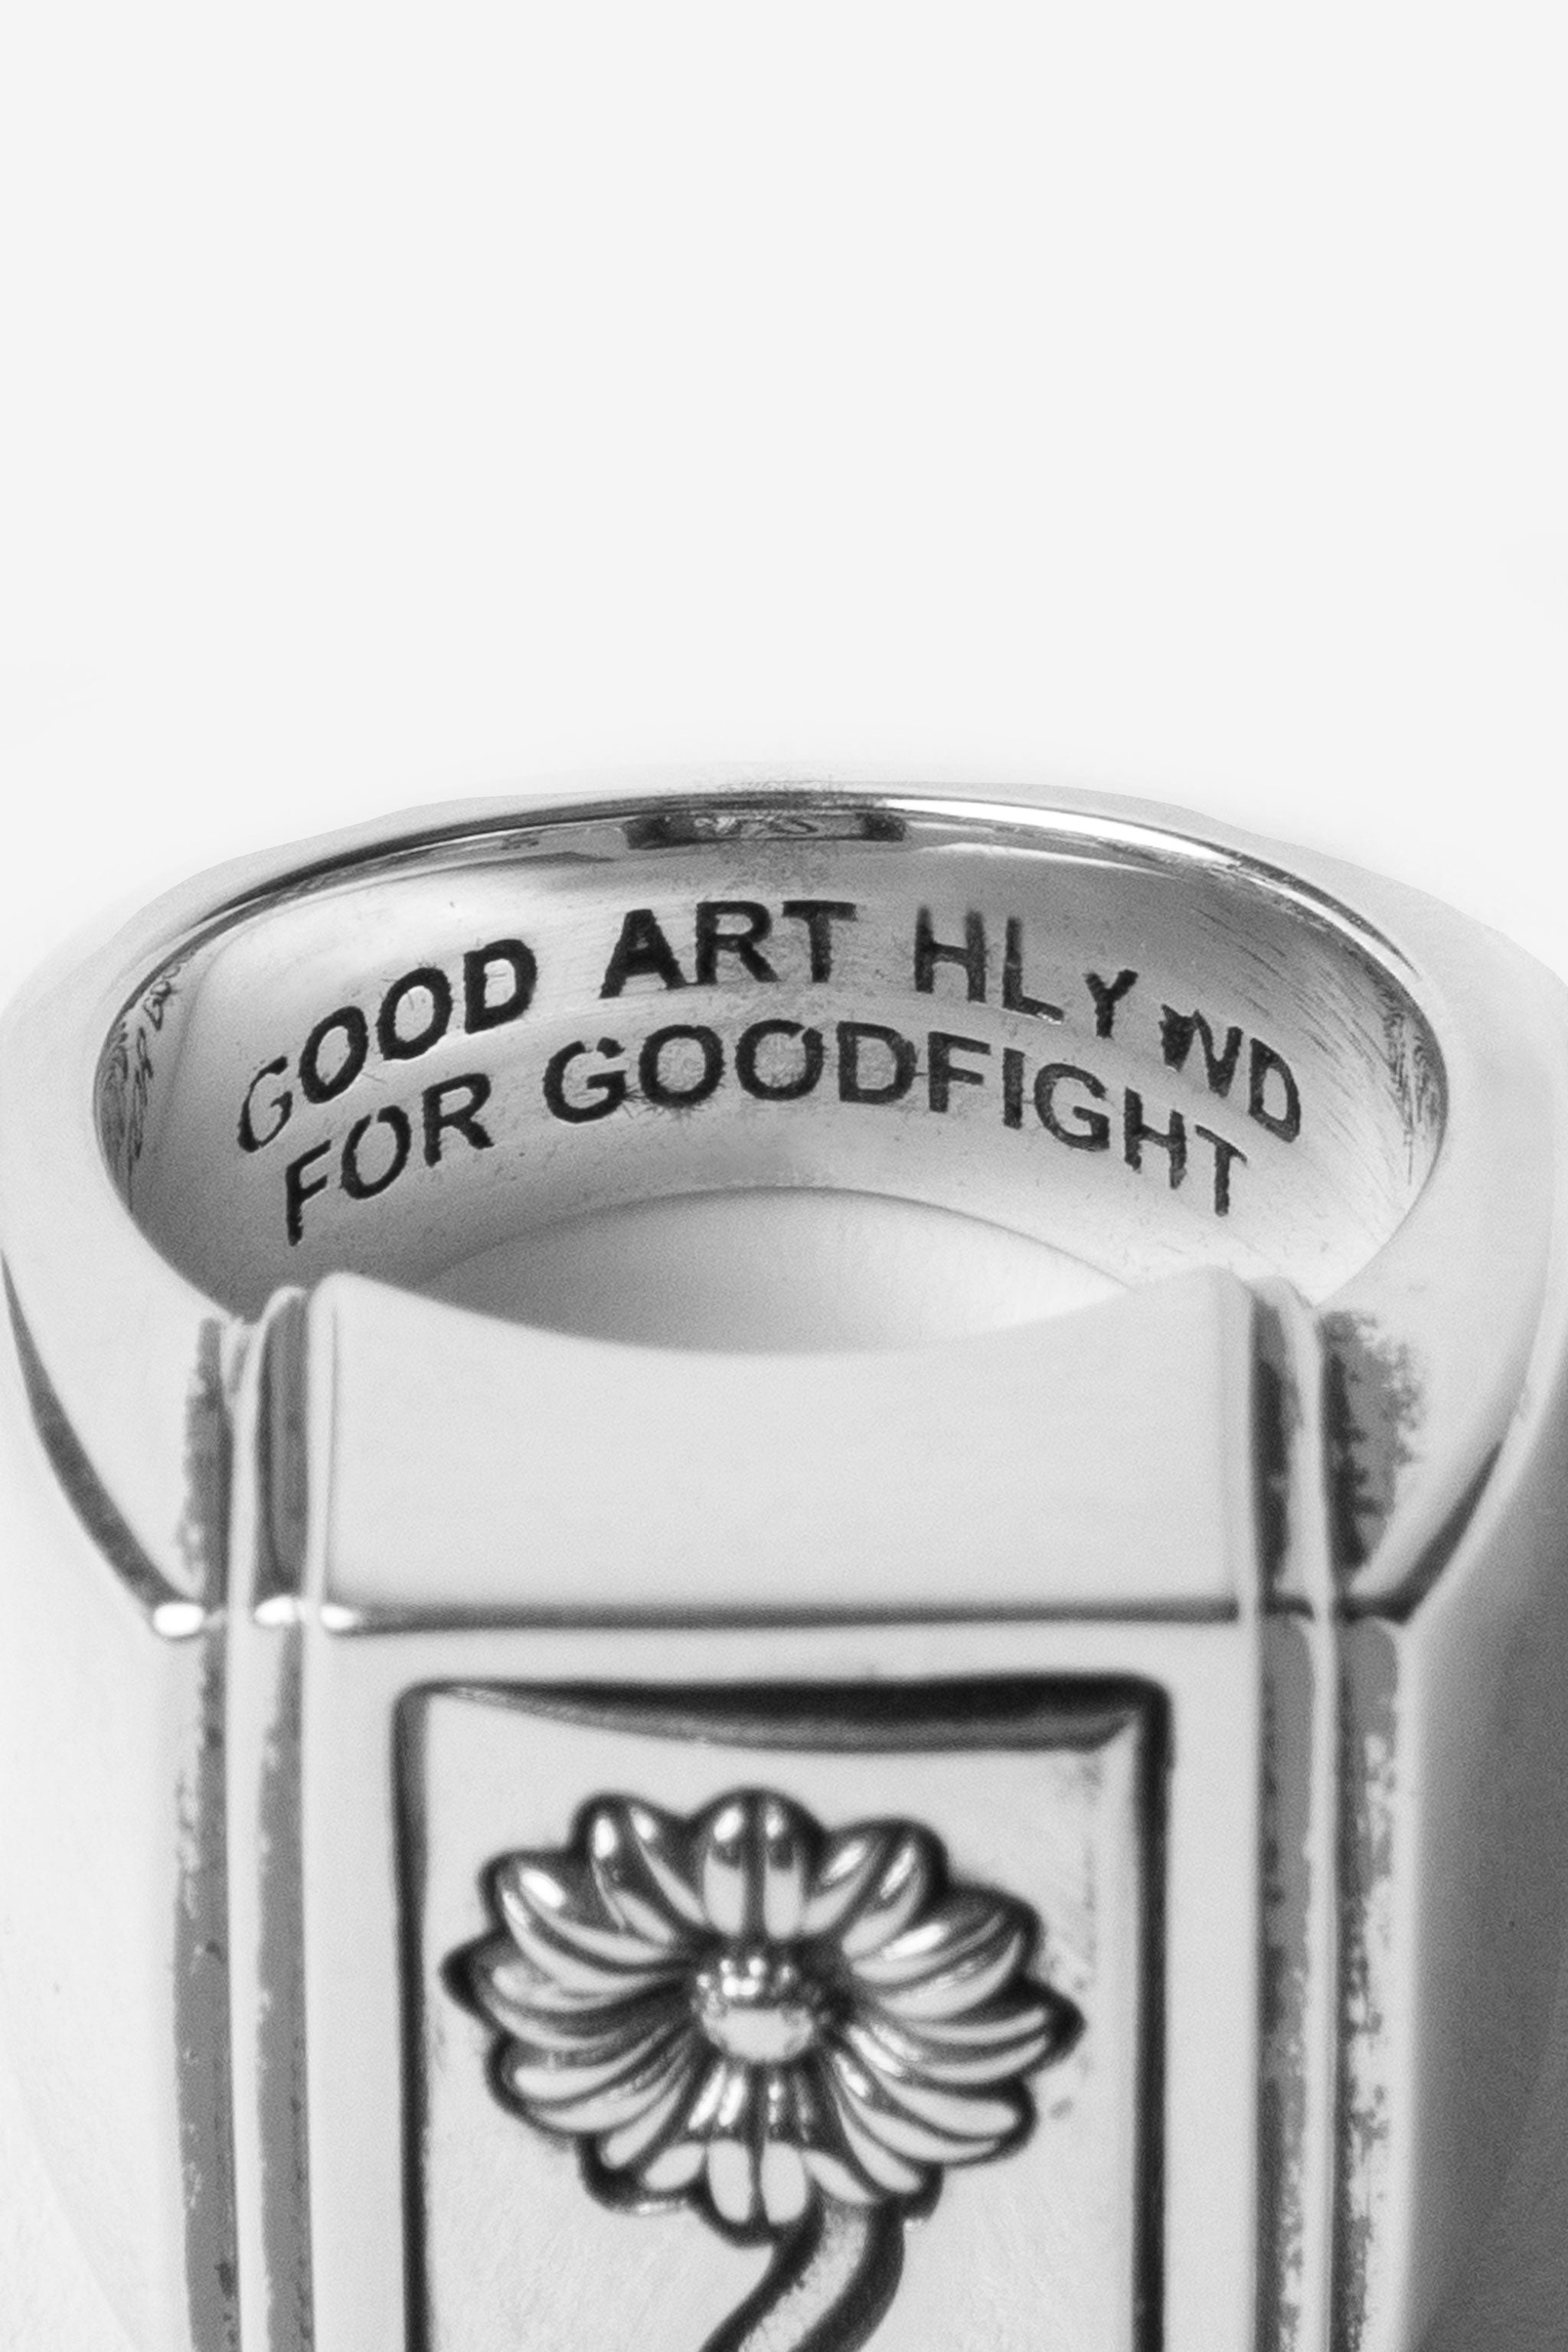 Good Art Hlywd for Goodfight Hippy Flip Tank Ring